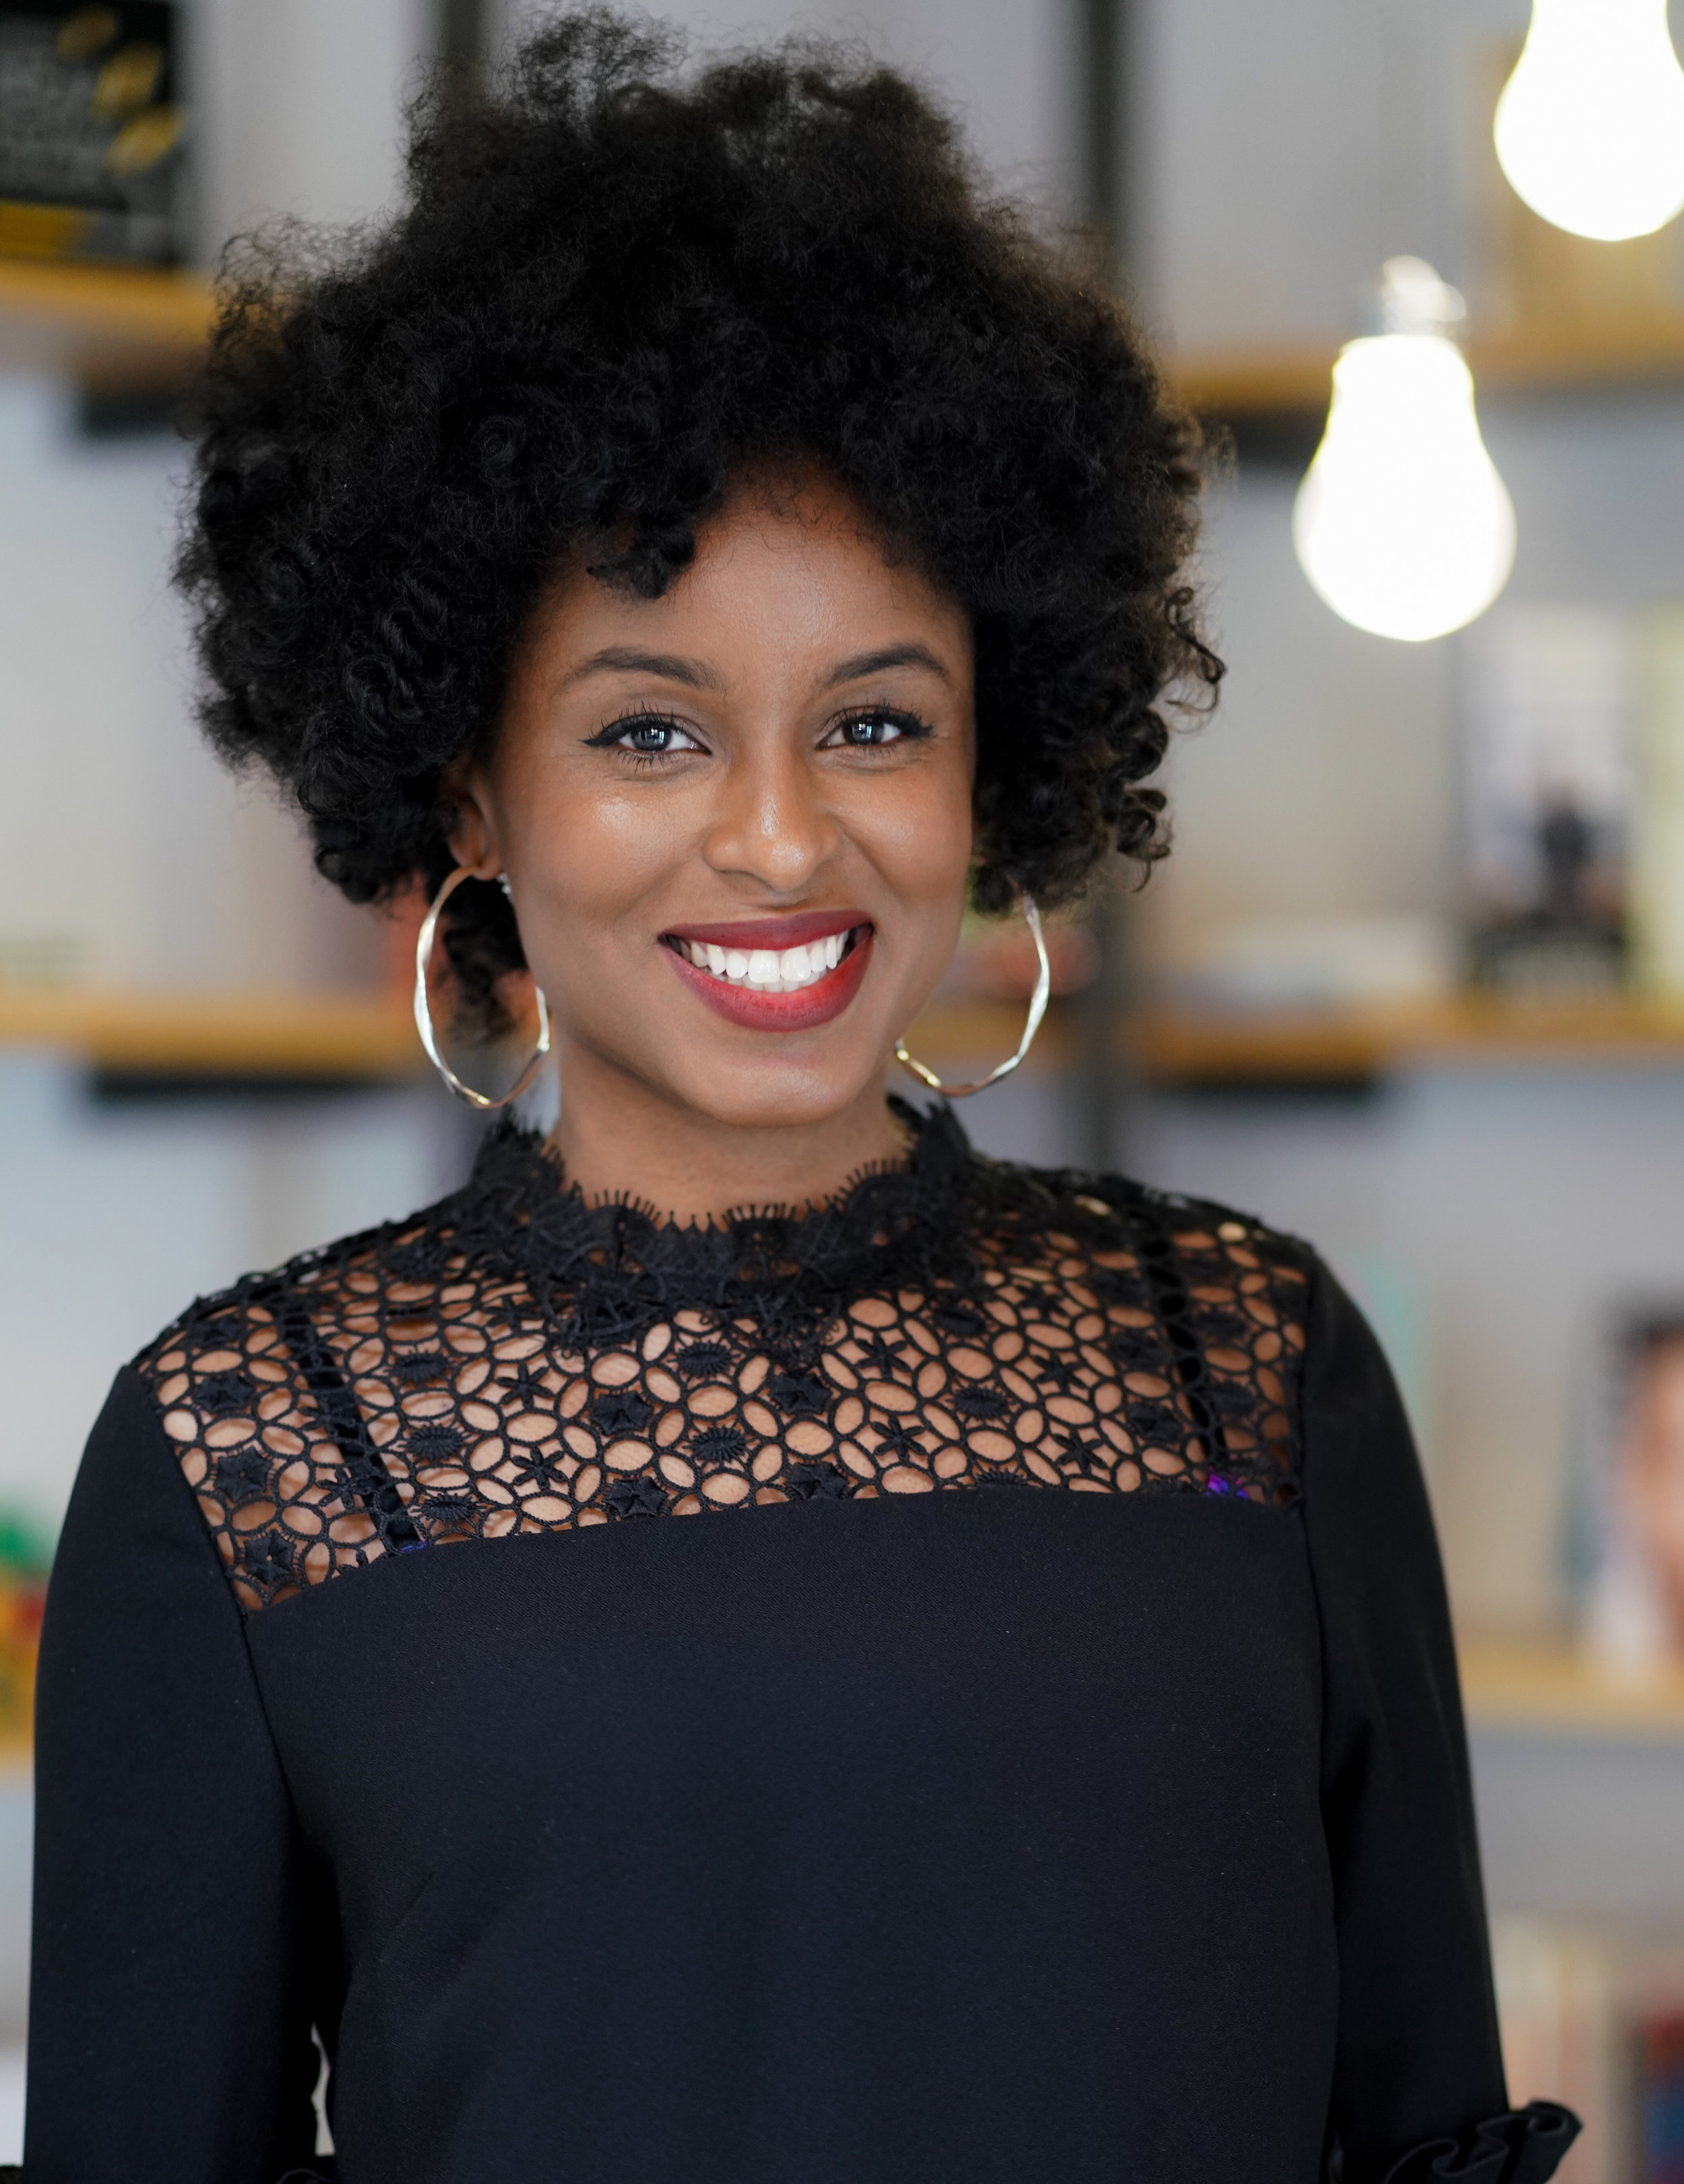 If you haven't witnessed the sexy side of philanthropy, you haven't met Latoya A. Henry. She's made her mark in public relations, fundraising, special events, and marketing and communications for over a decade, all the while reconstructing the perception of altruism for young professionals in New York City. -